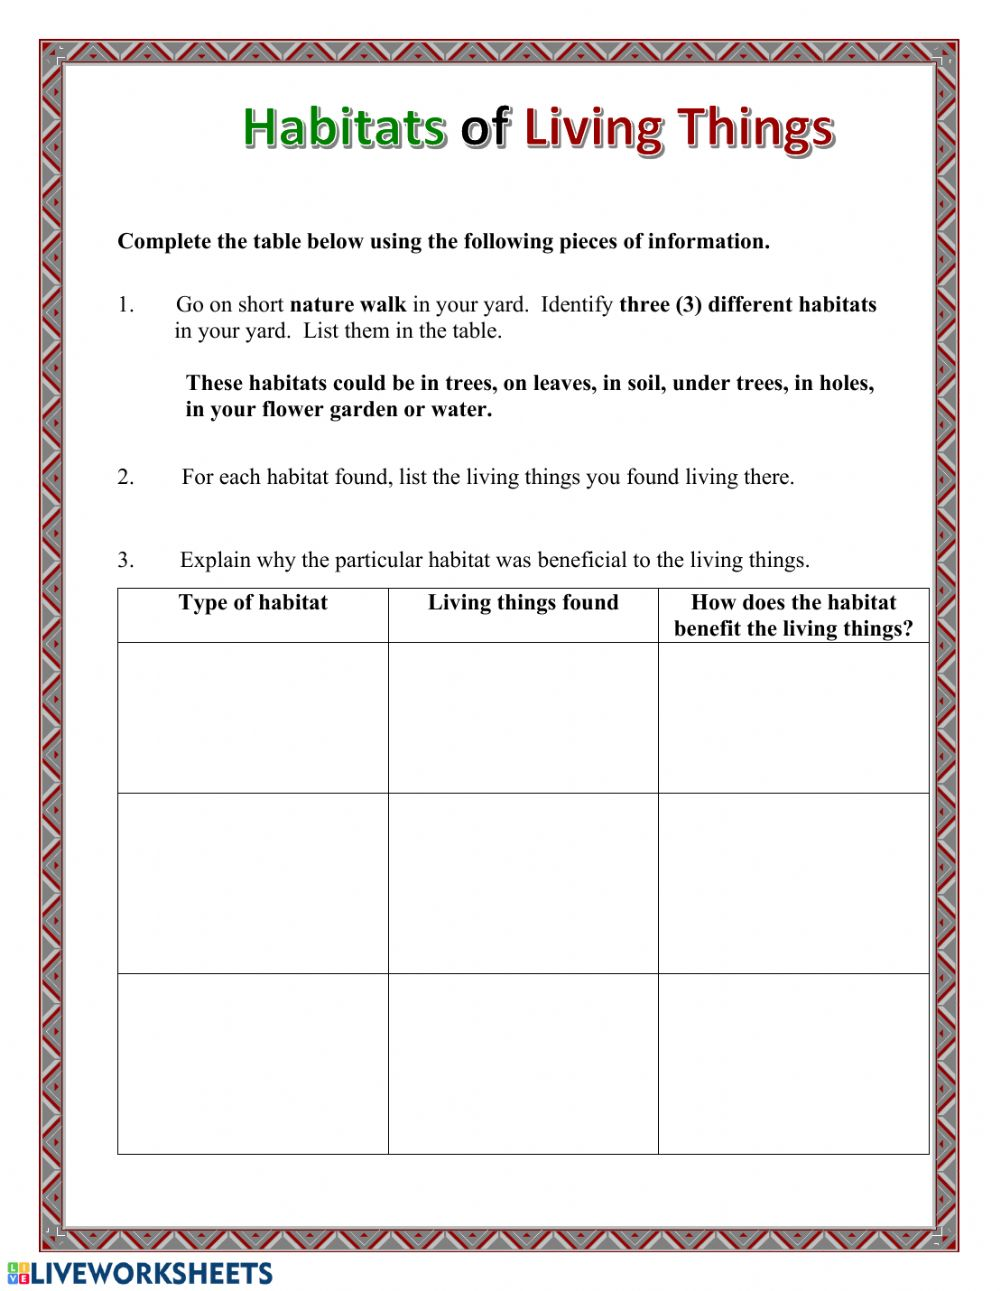 hight resolution of Habitats of Living things worksheet